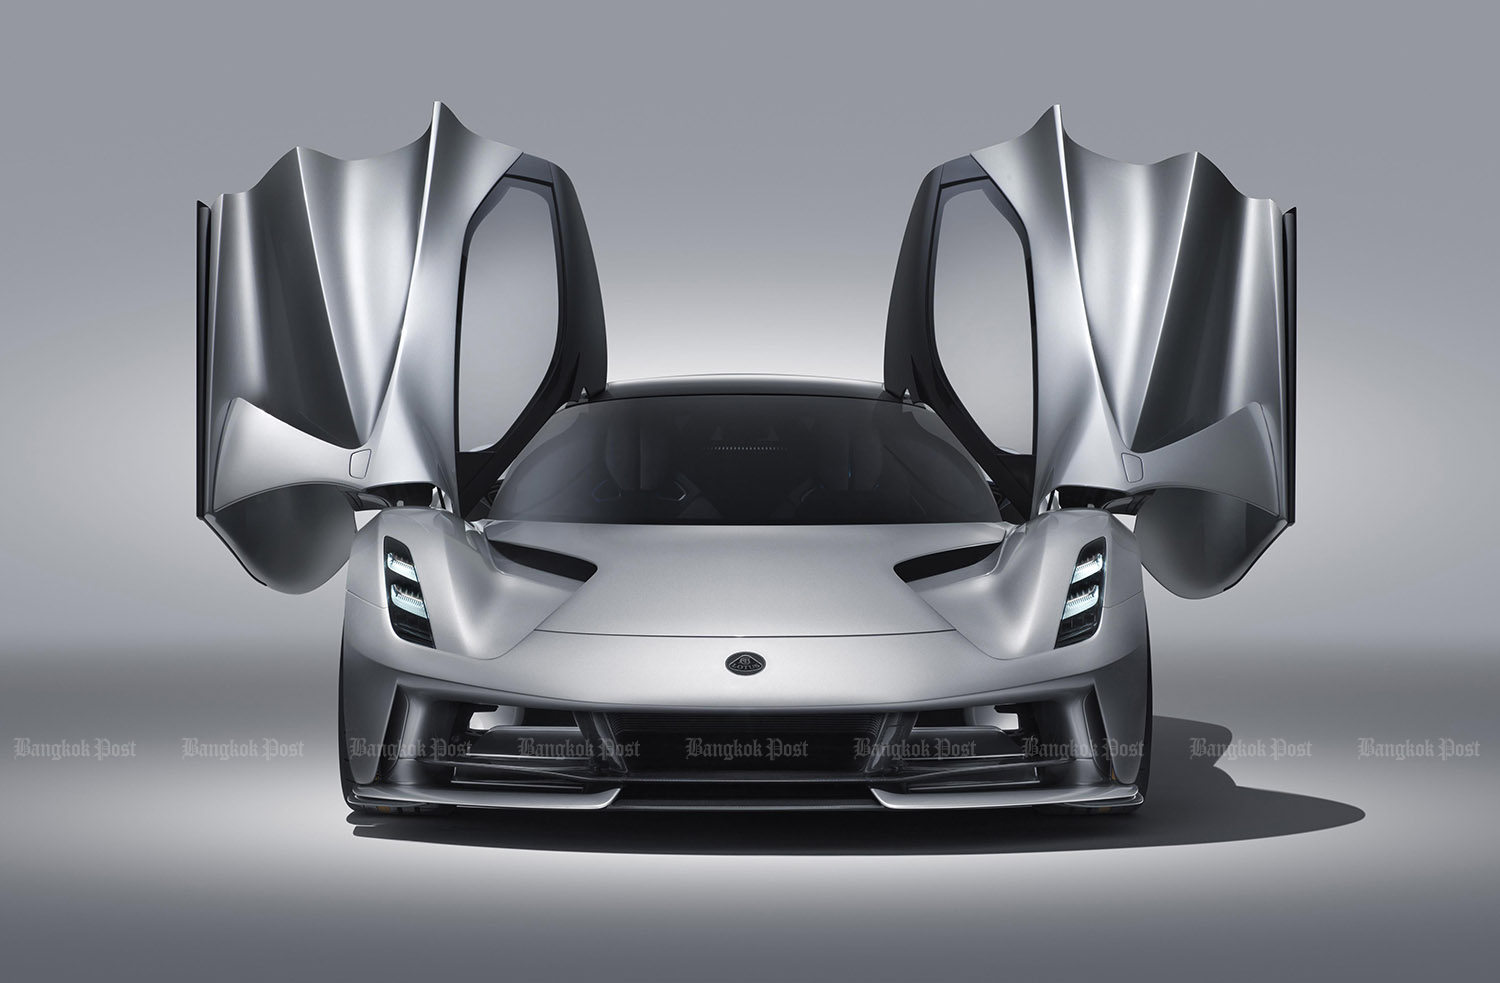 Lotus unveils new Evija electric hypercar with 2,000hp